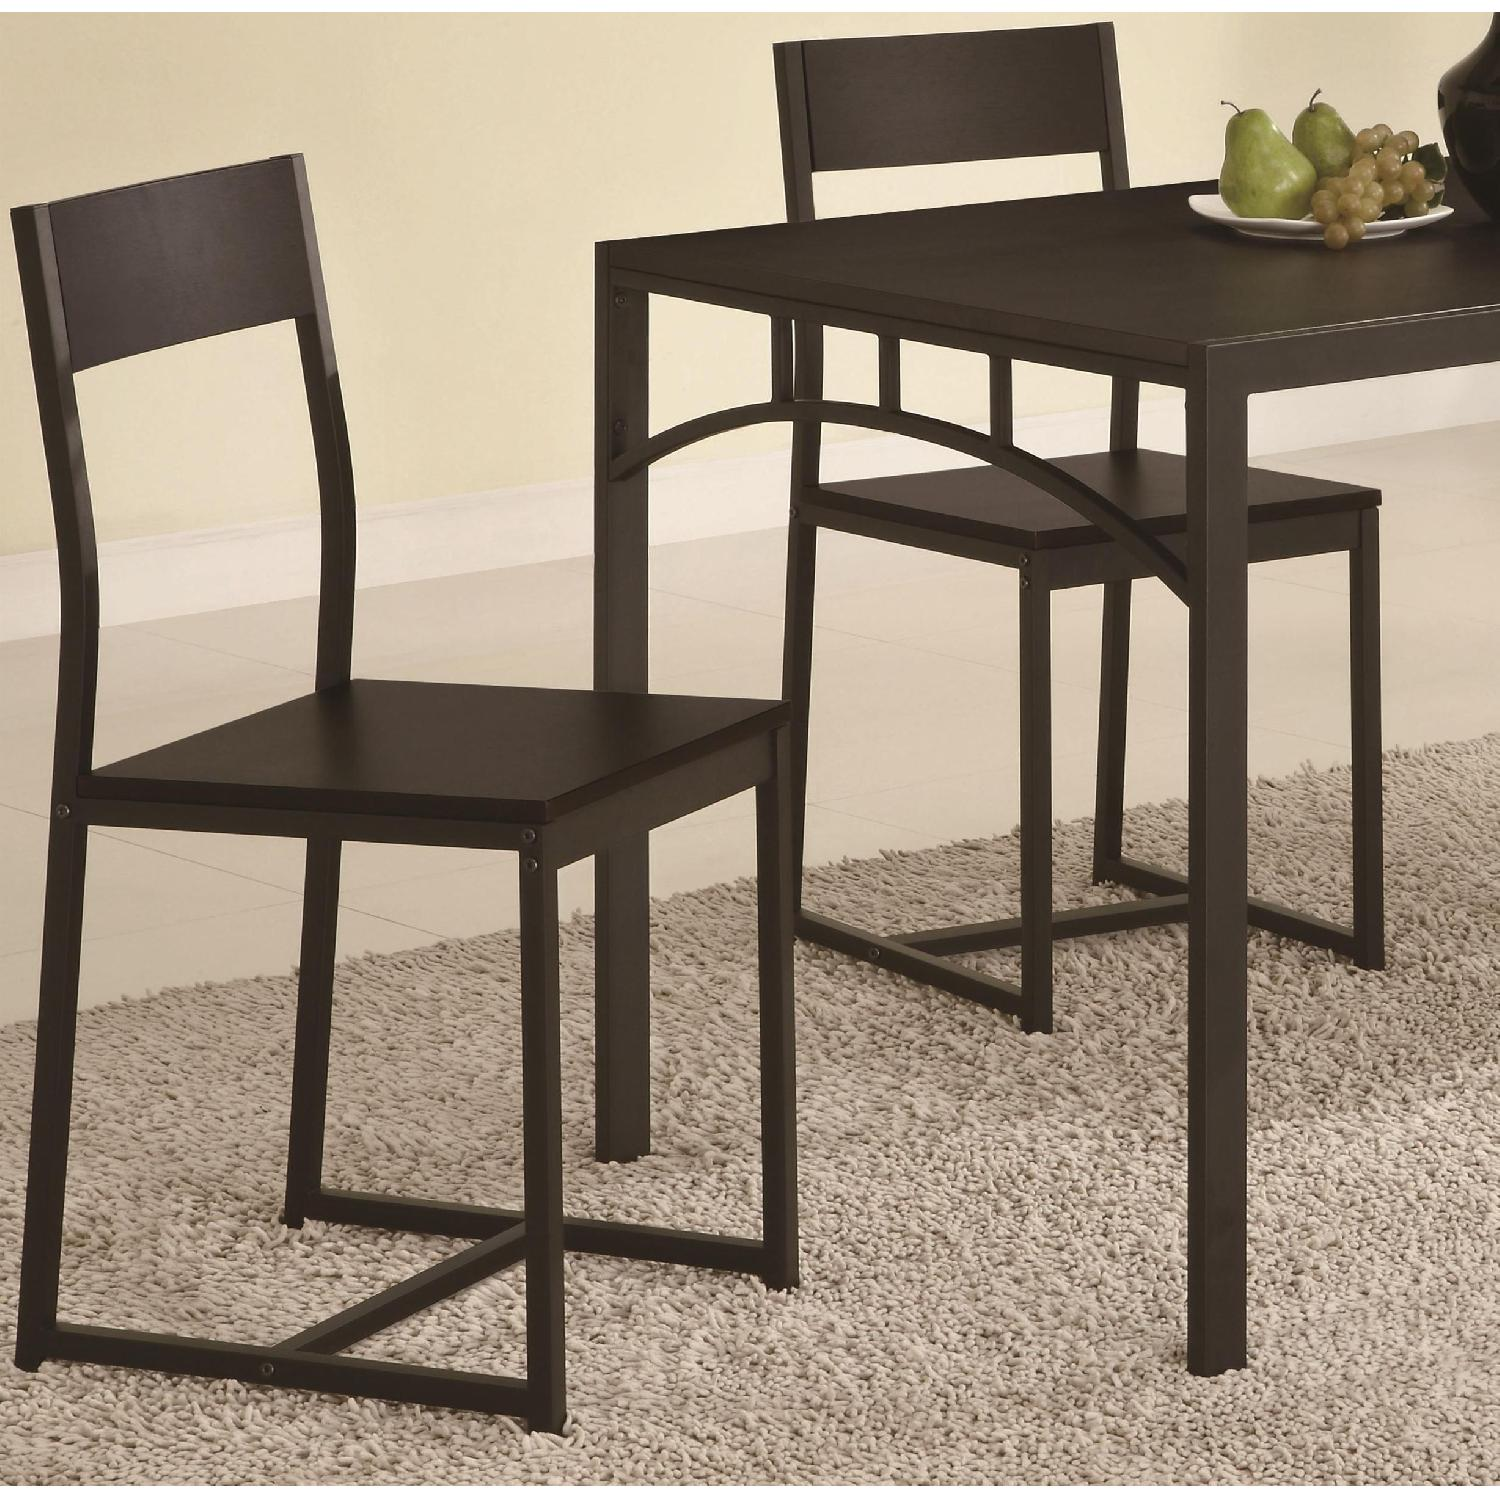 5-Piece Simple Chic Dining Set w/ Metal Frame & Wood Top - image-3